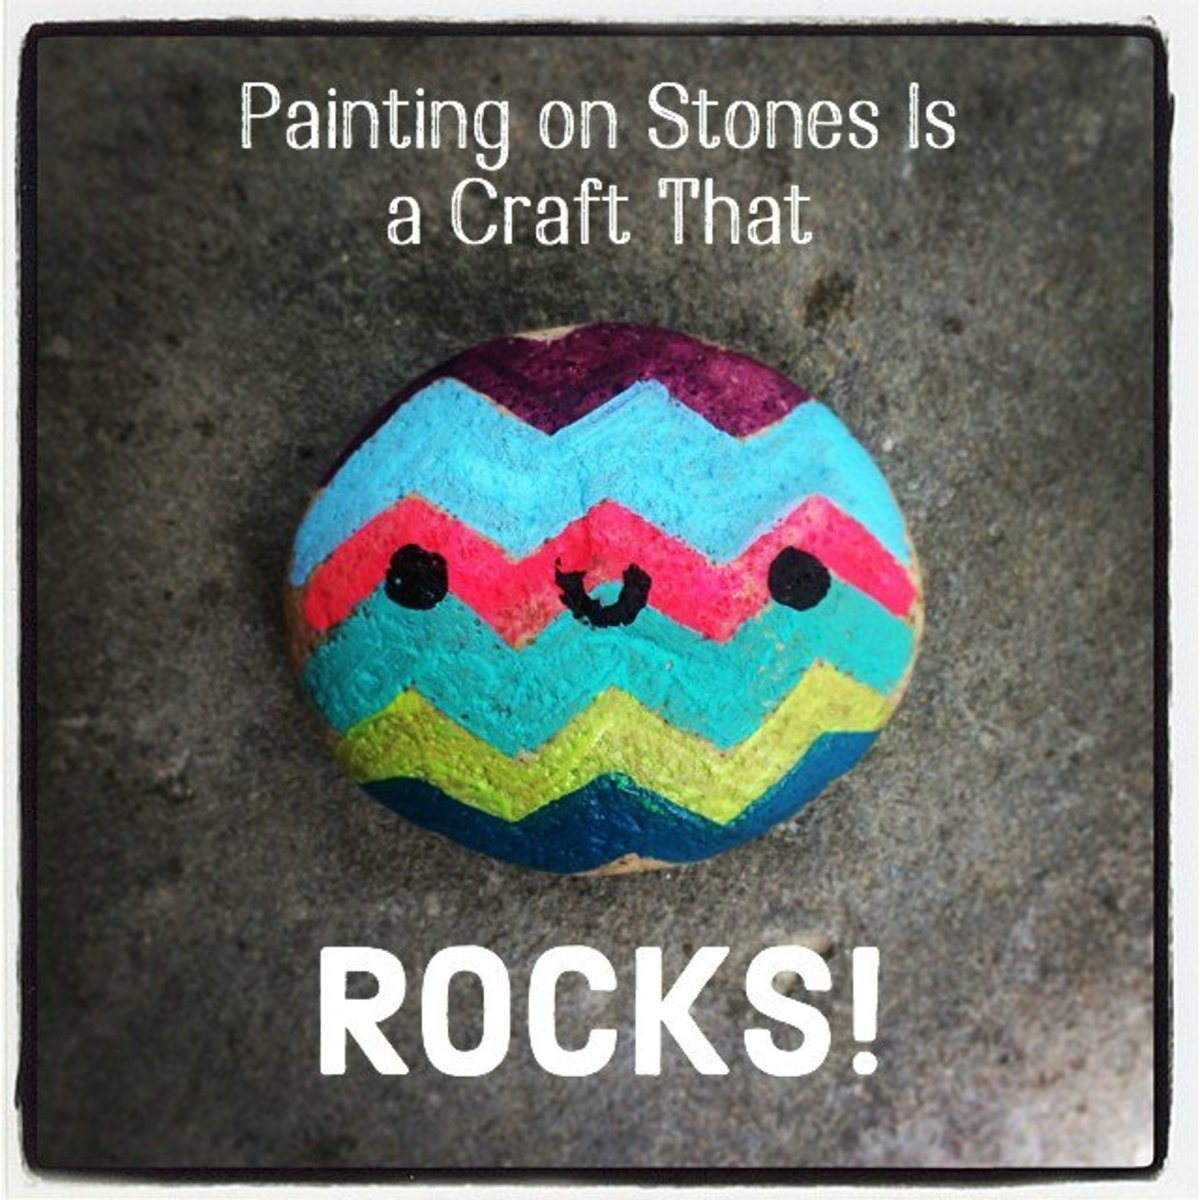 Meet Your New Hobby Painting On Rocks